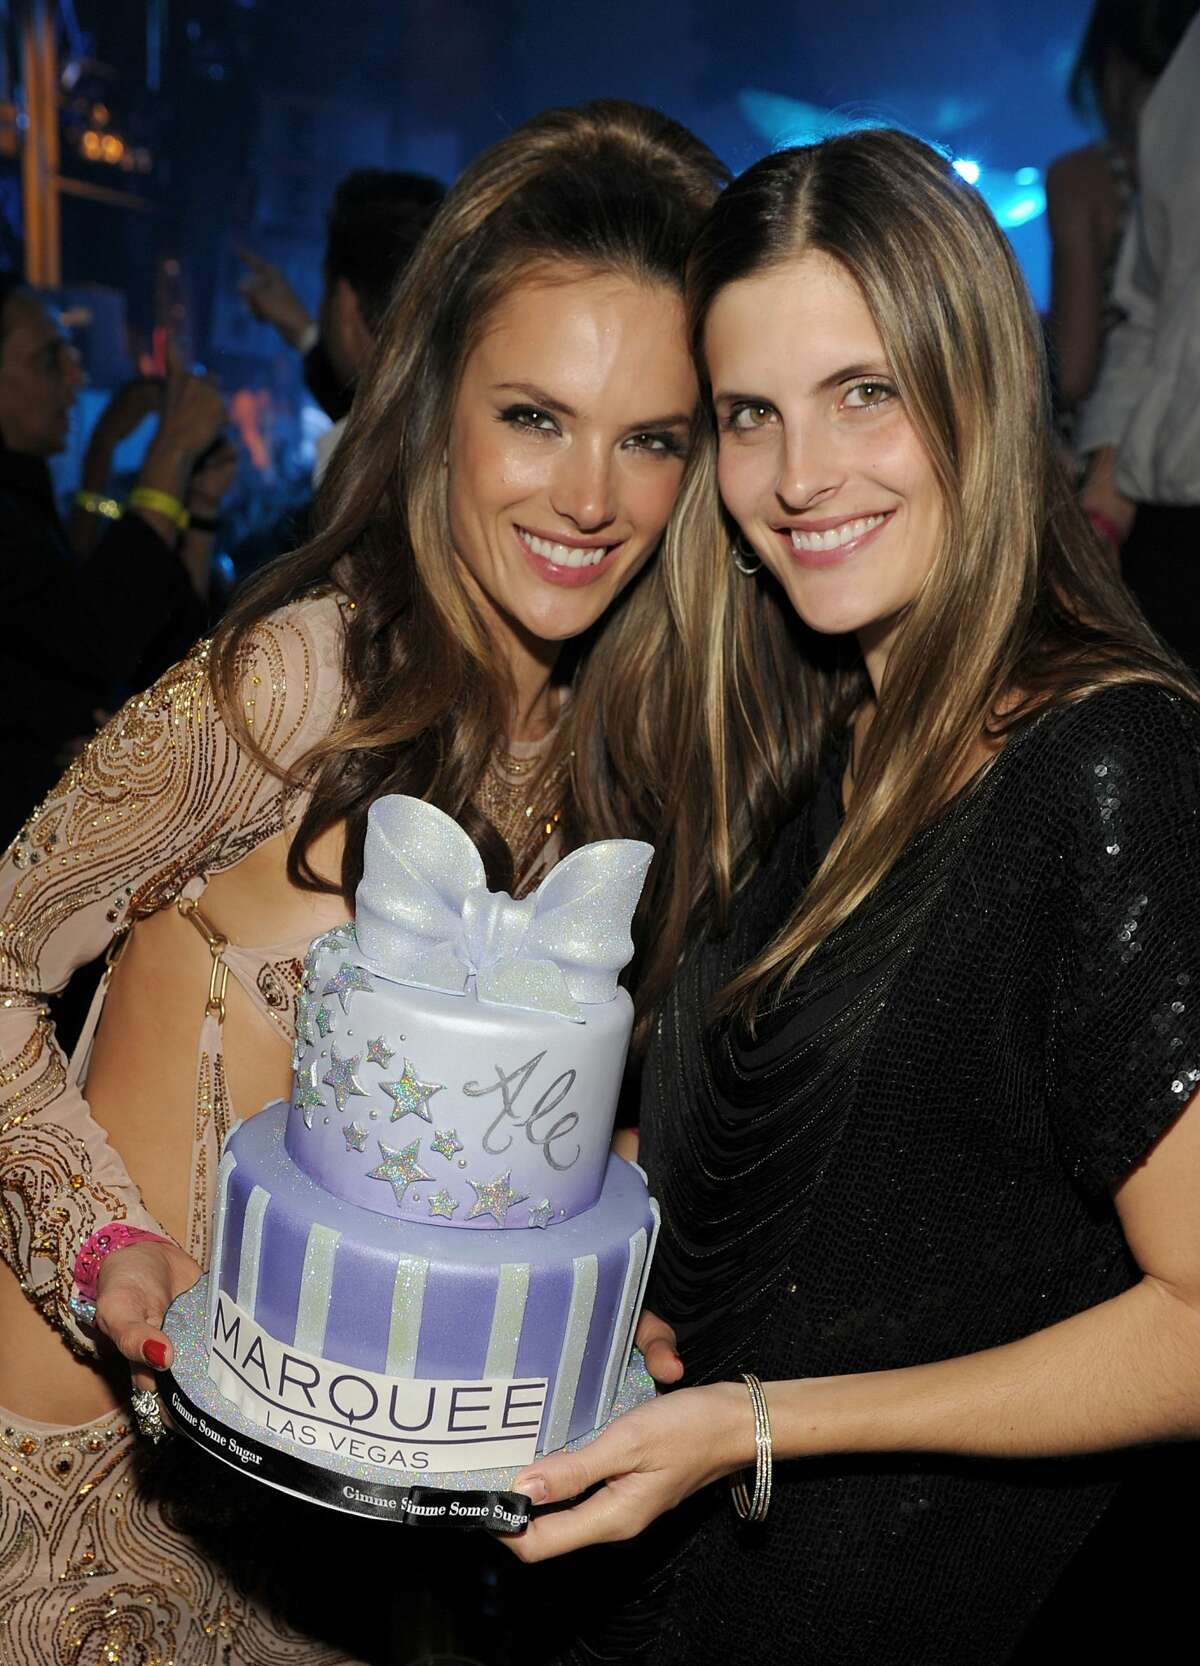 LAS VEGAS, NV - APRIL 09: Alessandra Ambrosio and her sister Aline celebrate Alessandra Ambrosio's birthday at Marquee Nightclub at The Cosmopolitan Of Las Vegas on April 9, 2011 in Las Vegas, Nevada. (Photo by Denise Truscello/WireImage)